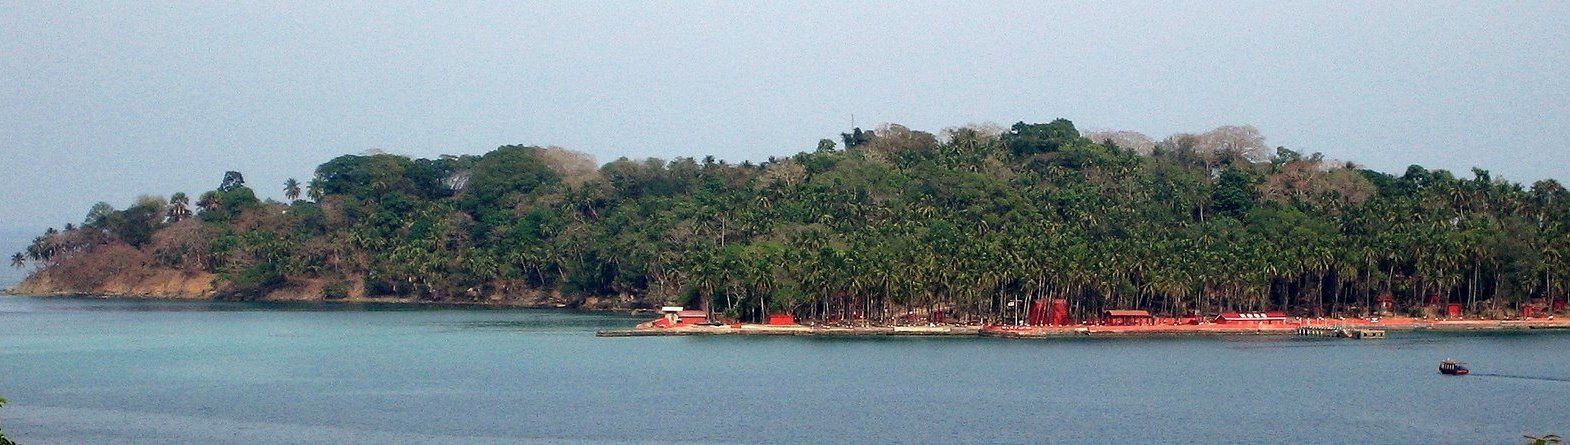 5 Aww-inspiring Romantic Things to do in Andaman and Nicobar Islands